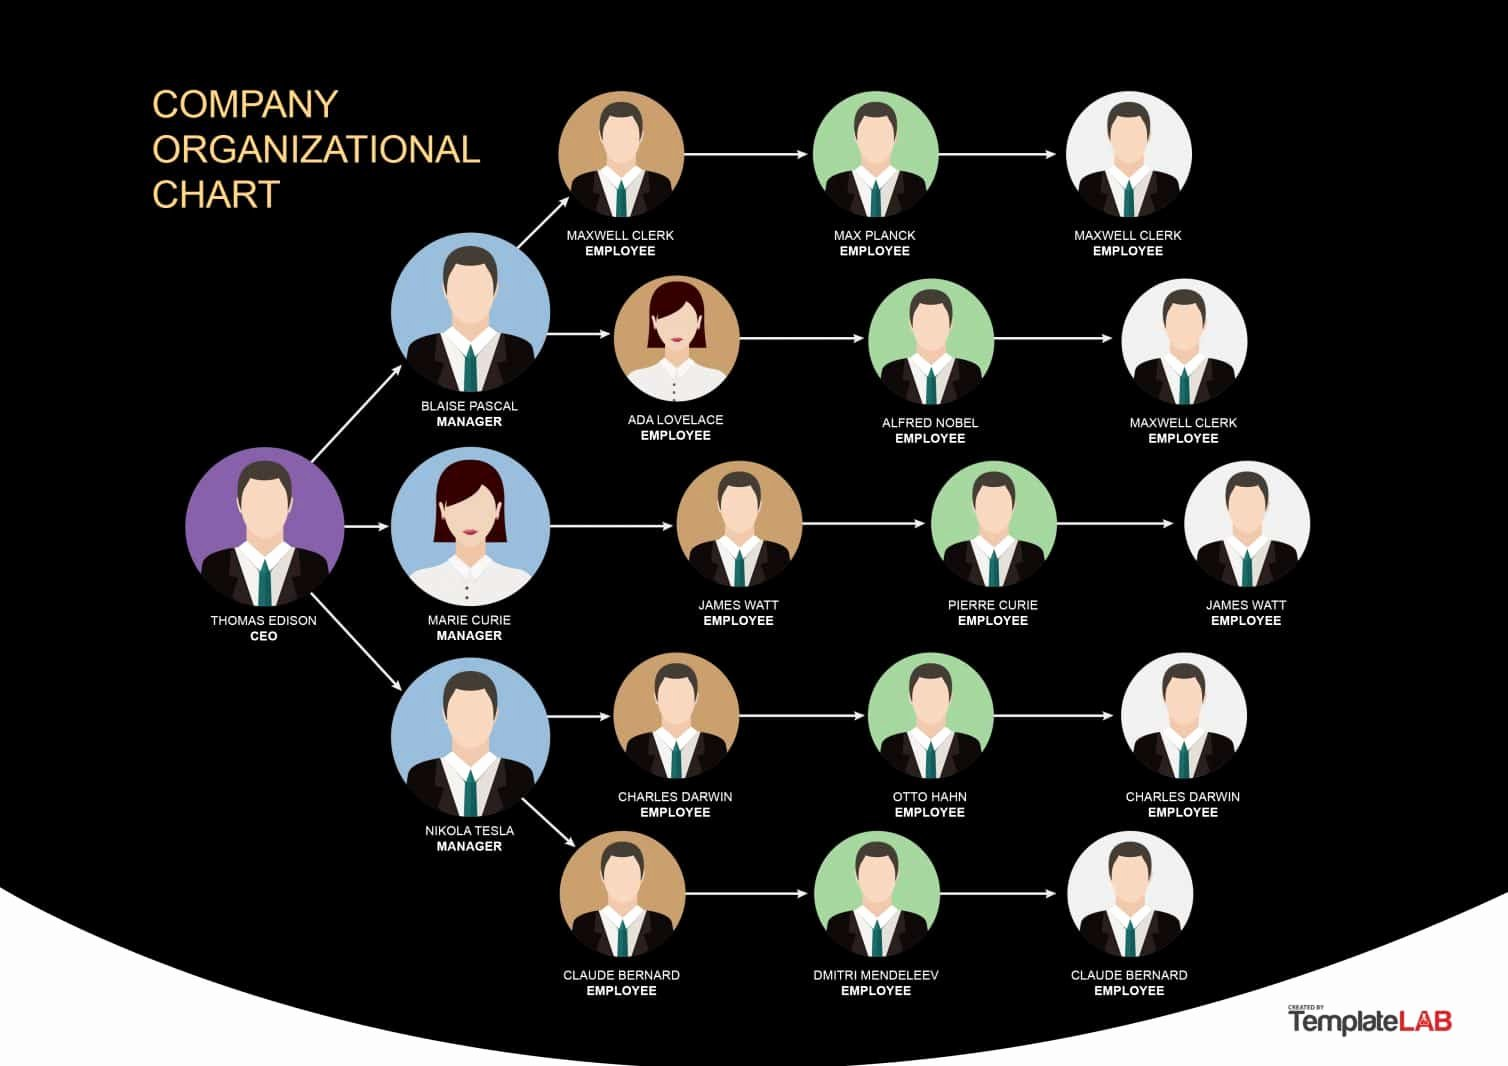 Organizational Chart Template Free Fresh 40 organizational Chart Templates Word Excel Powerpoint